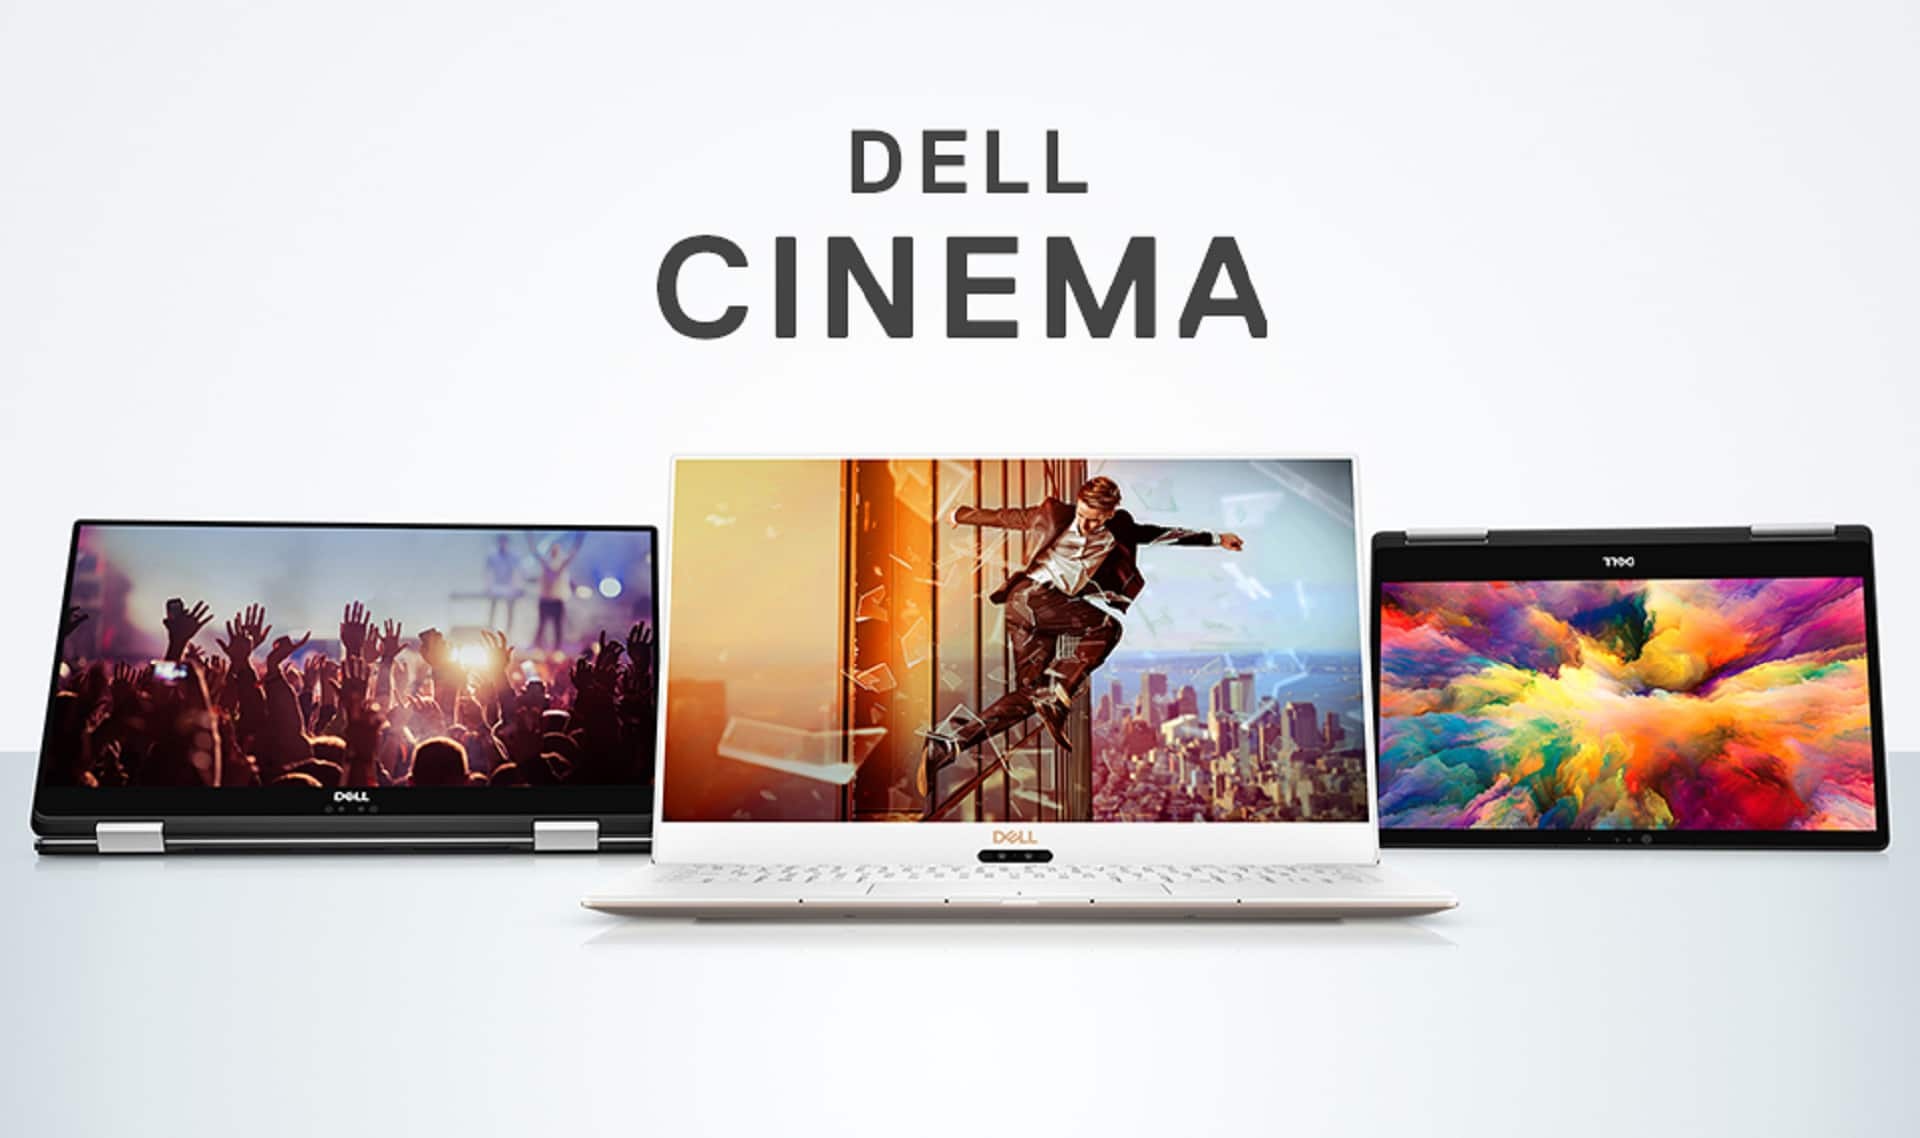 全新Dell Cinema